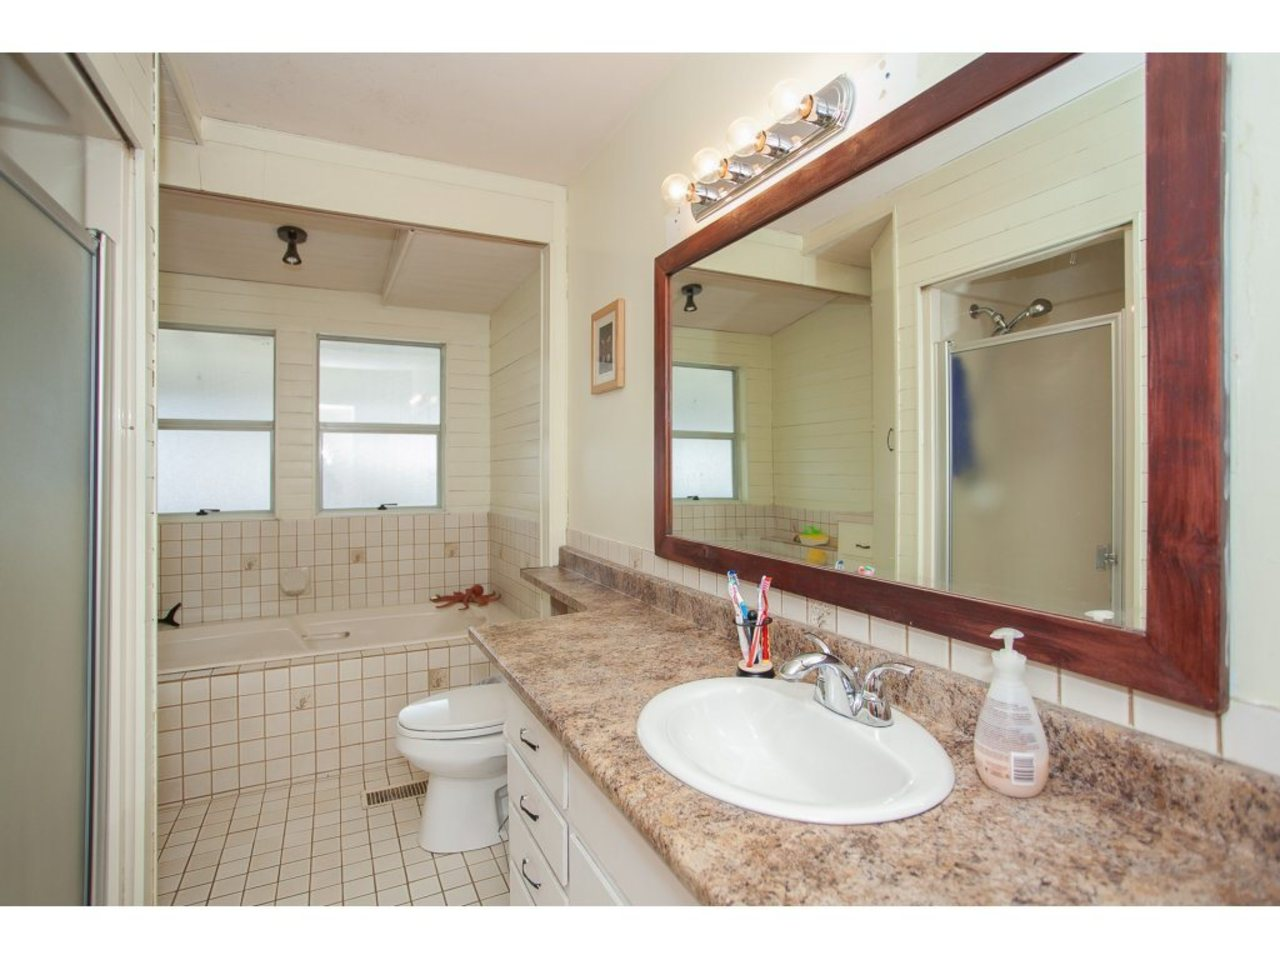 Bathroom-Listed by Solon REM, Top Langley & Fraser Valley Realtor  at 19943 Brydon, Langley City, Langley